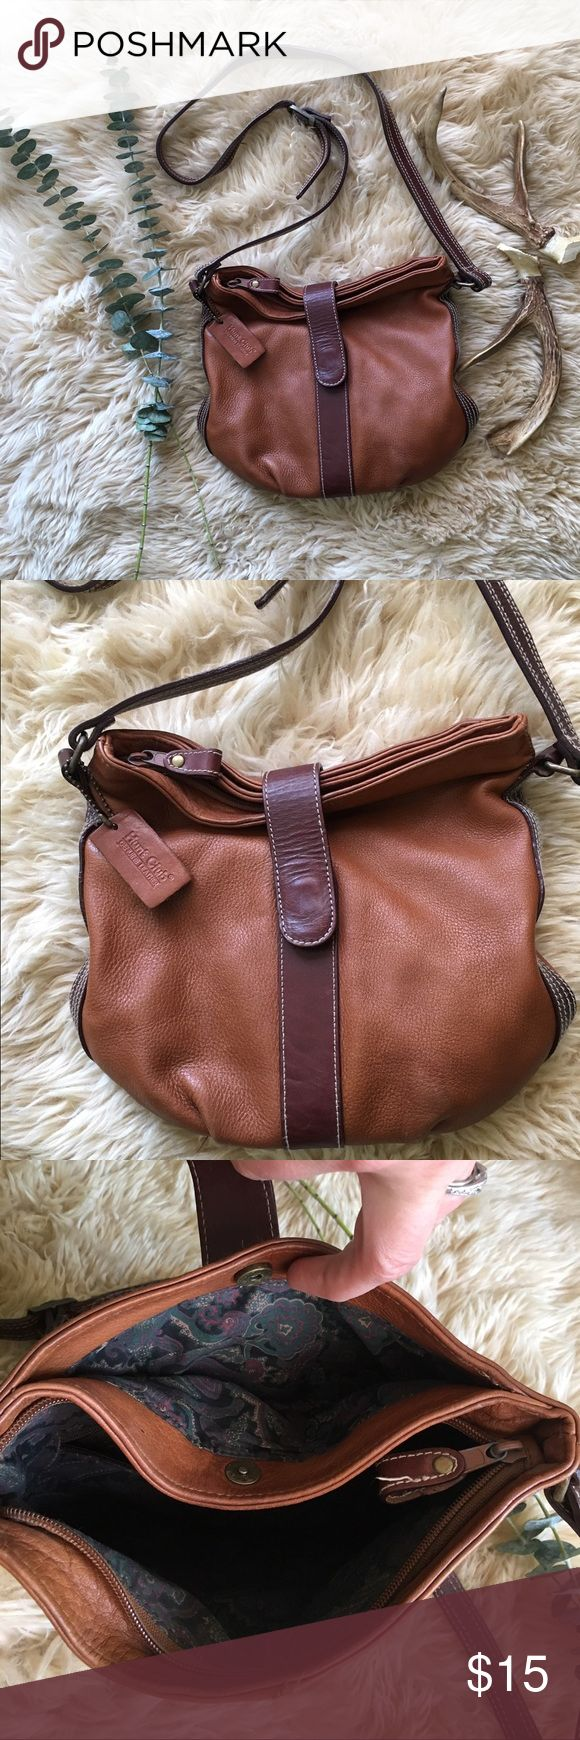 Hunt Club Leather Purse Hunt Club Leather Purse. Cute and slouchy with several storage compartments. Adjustable strap. In good condition with some wear. Hunt Club  Bags